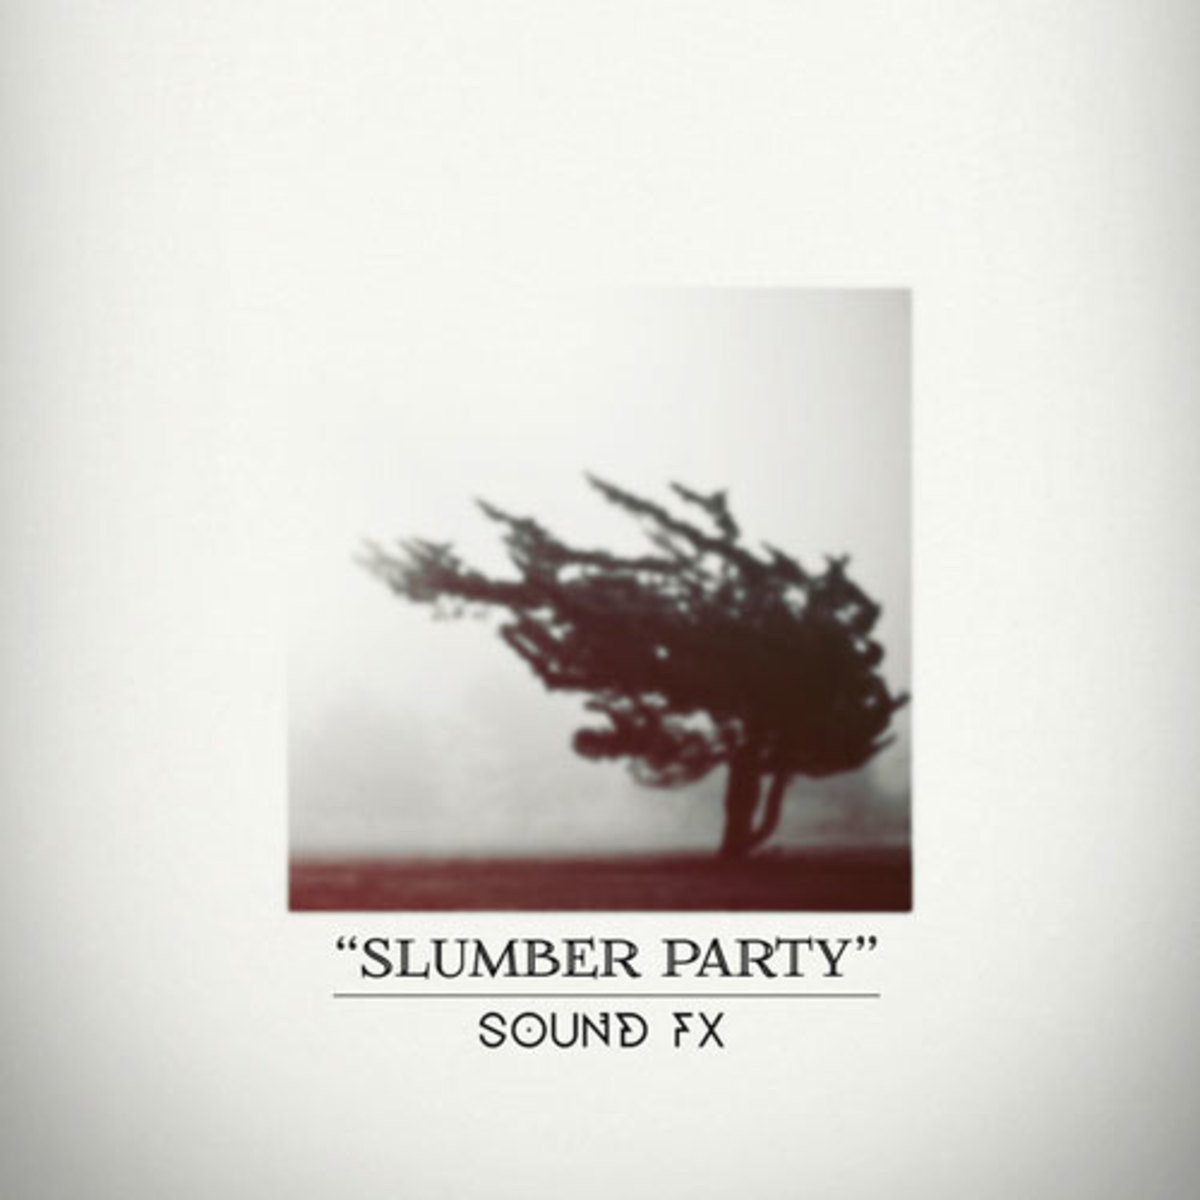 soundfx-slumberparty.jpg